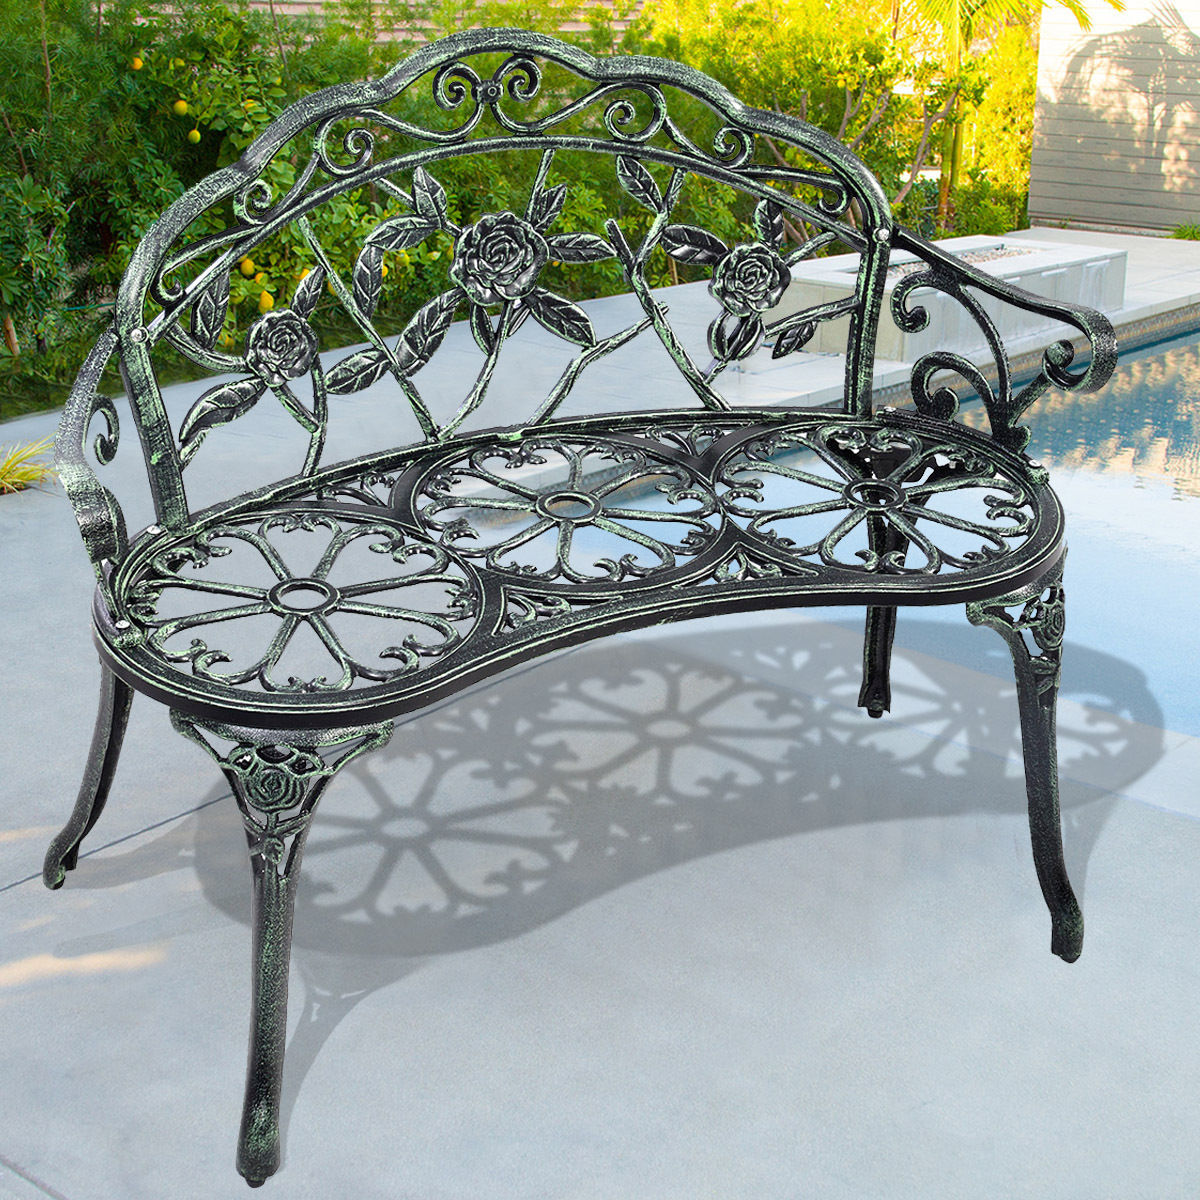 Giantex Patio Garden Bench Chair Vintage Style Porch Cast Aluminum Outdoor Furniture Back Rose Antique Green Yard Bench OP2780 3 seater wooden garden patio bench acacia garden furniture hot sale